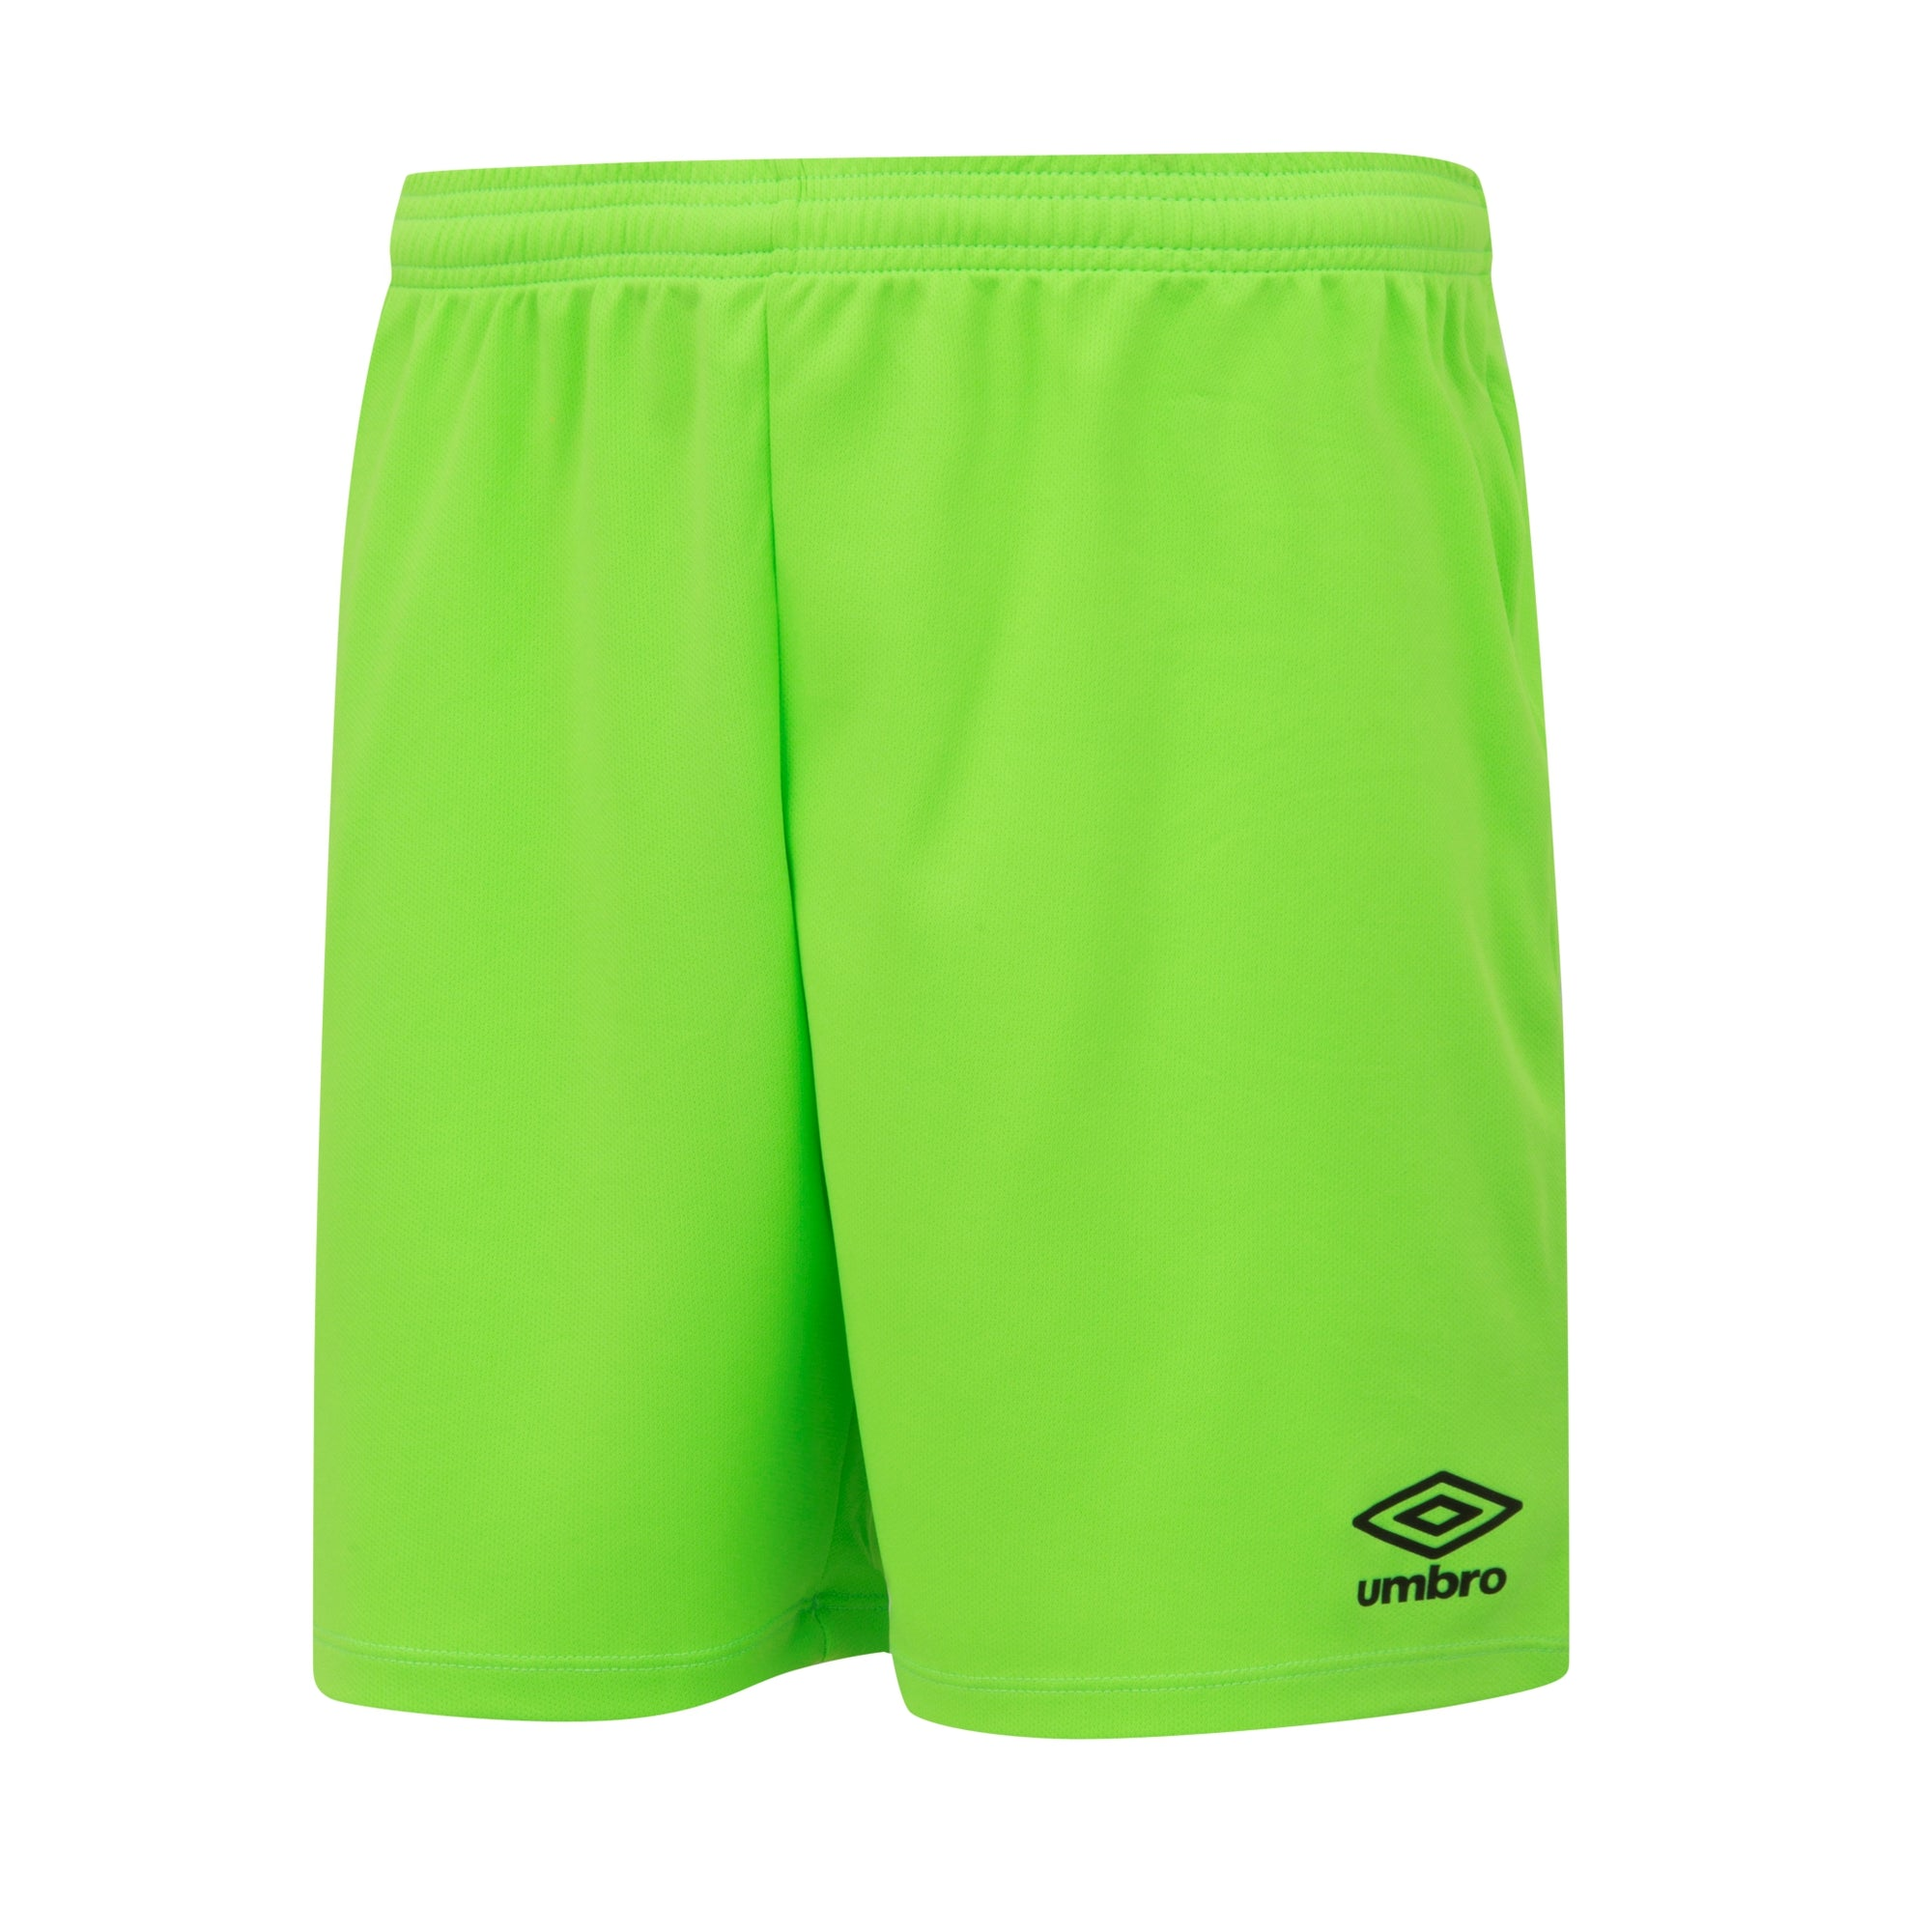 Umbro Club Short II - Gecko Green